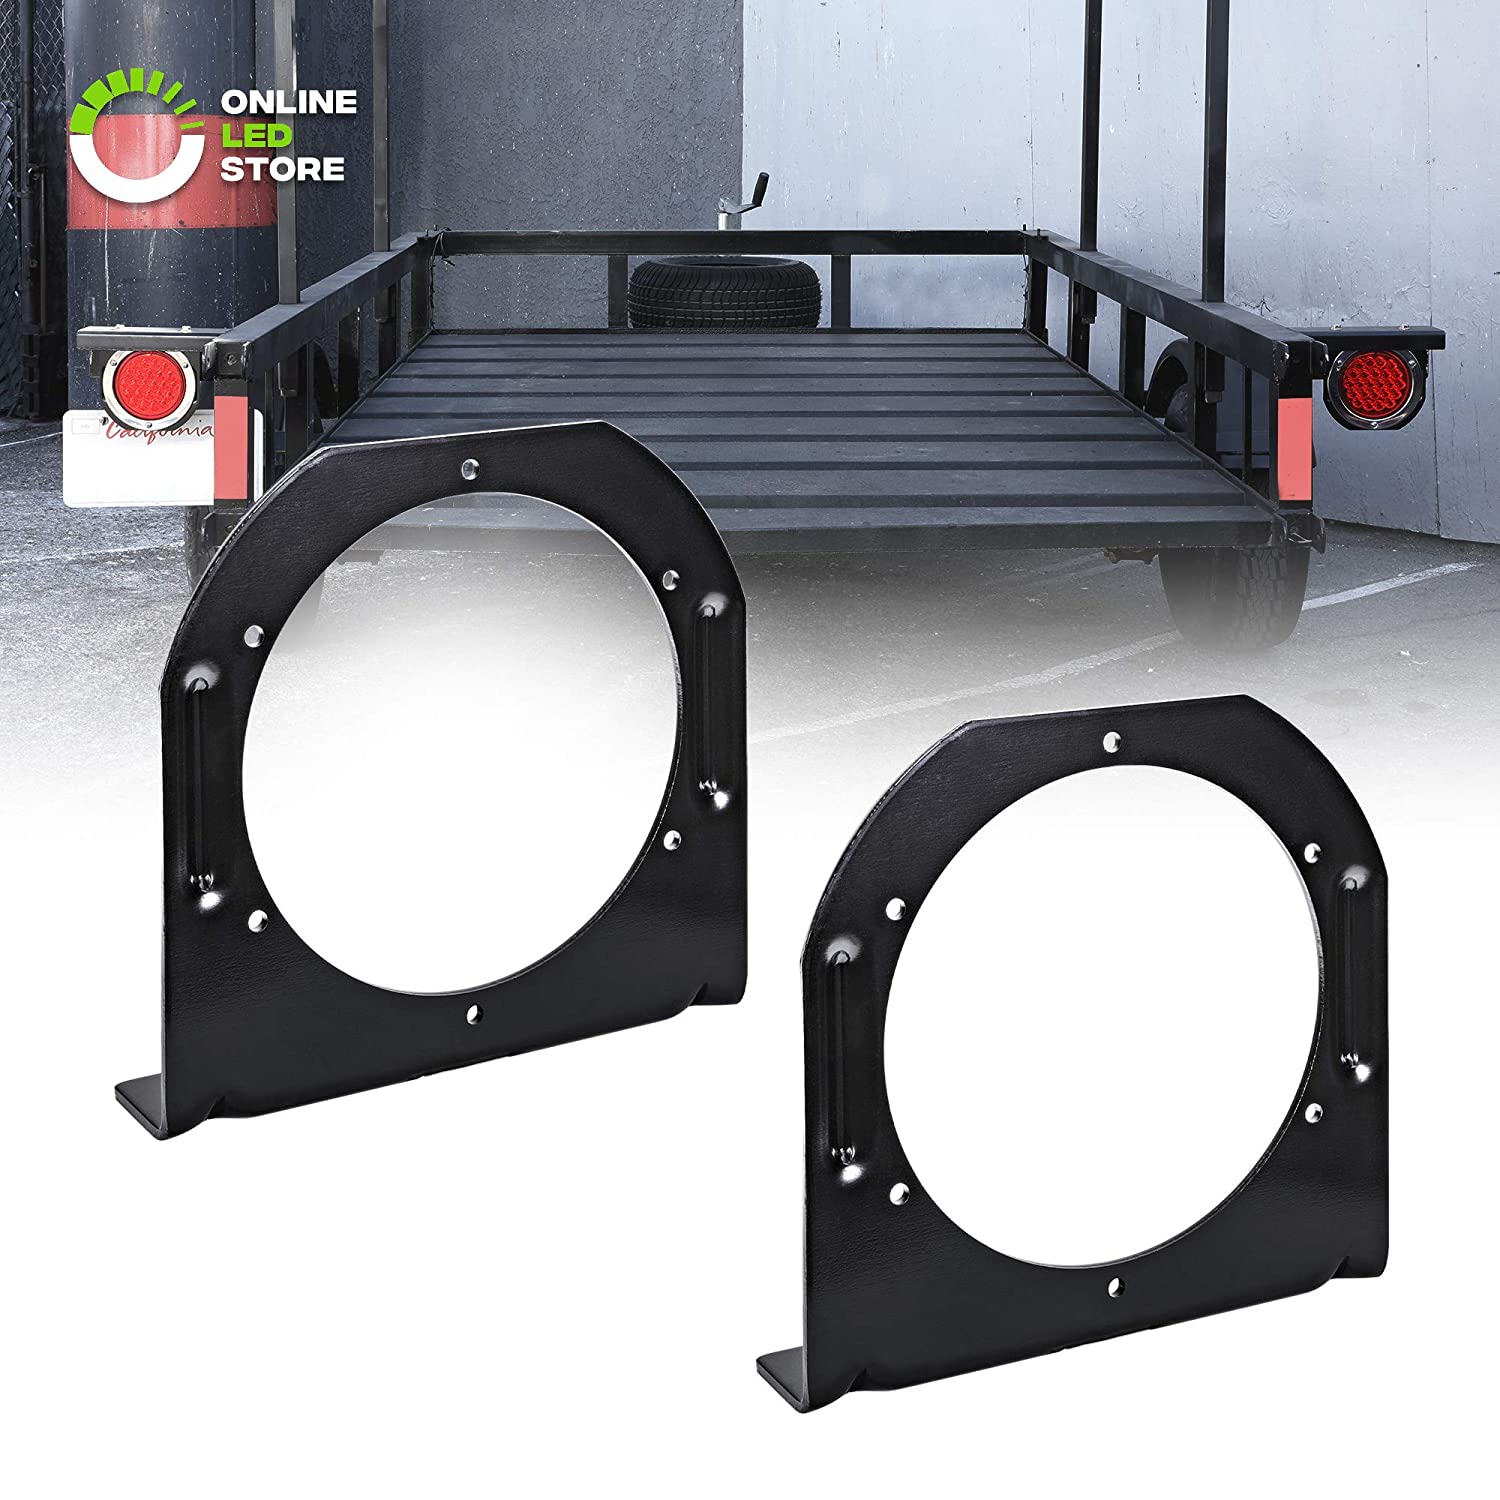 2pc 4 Round Tail Light L Shape Mounting Bracket Powder Coated Steel Fits Standard D.O.T 4 Round Tailights For Trailers Reinforced Notches 3mm Steel Vertical or Horizontal Mounting